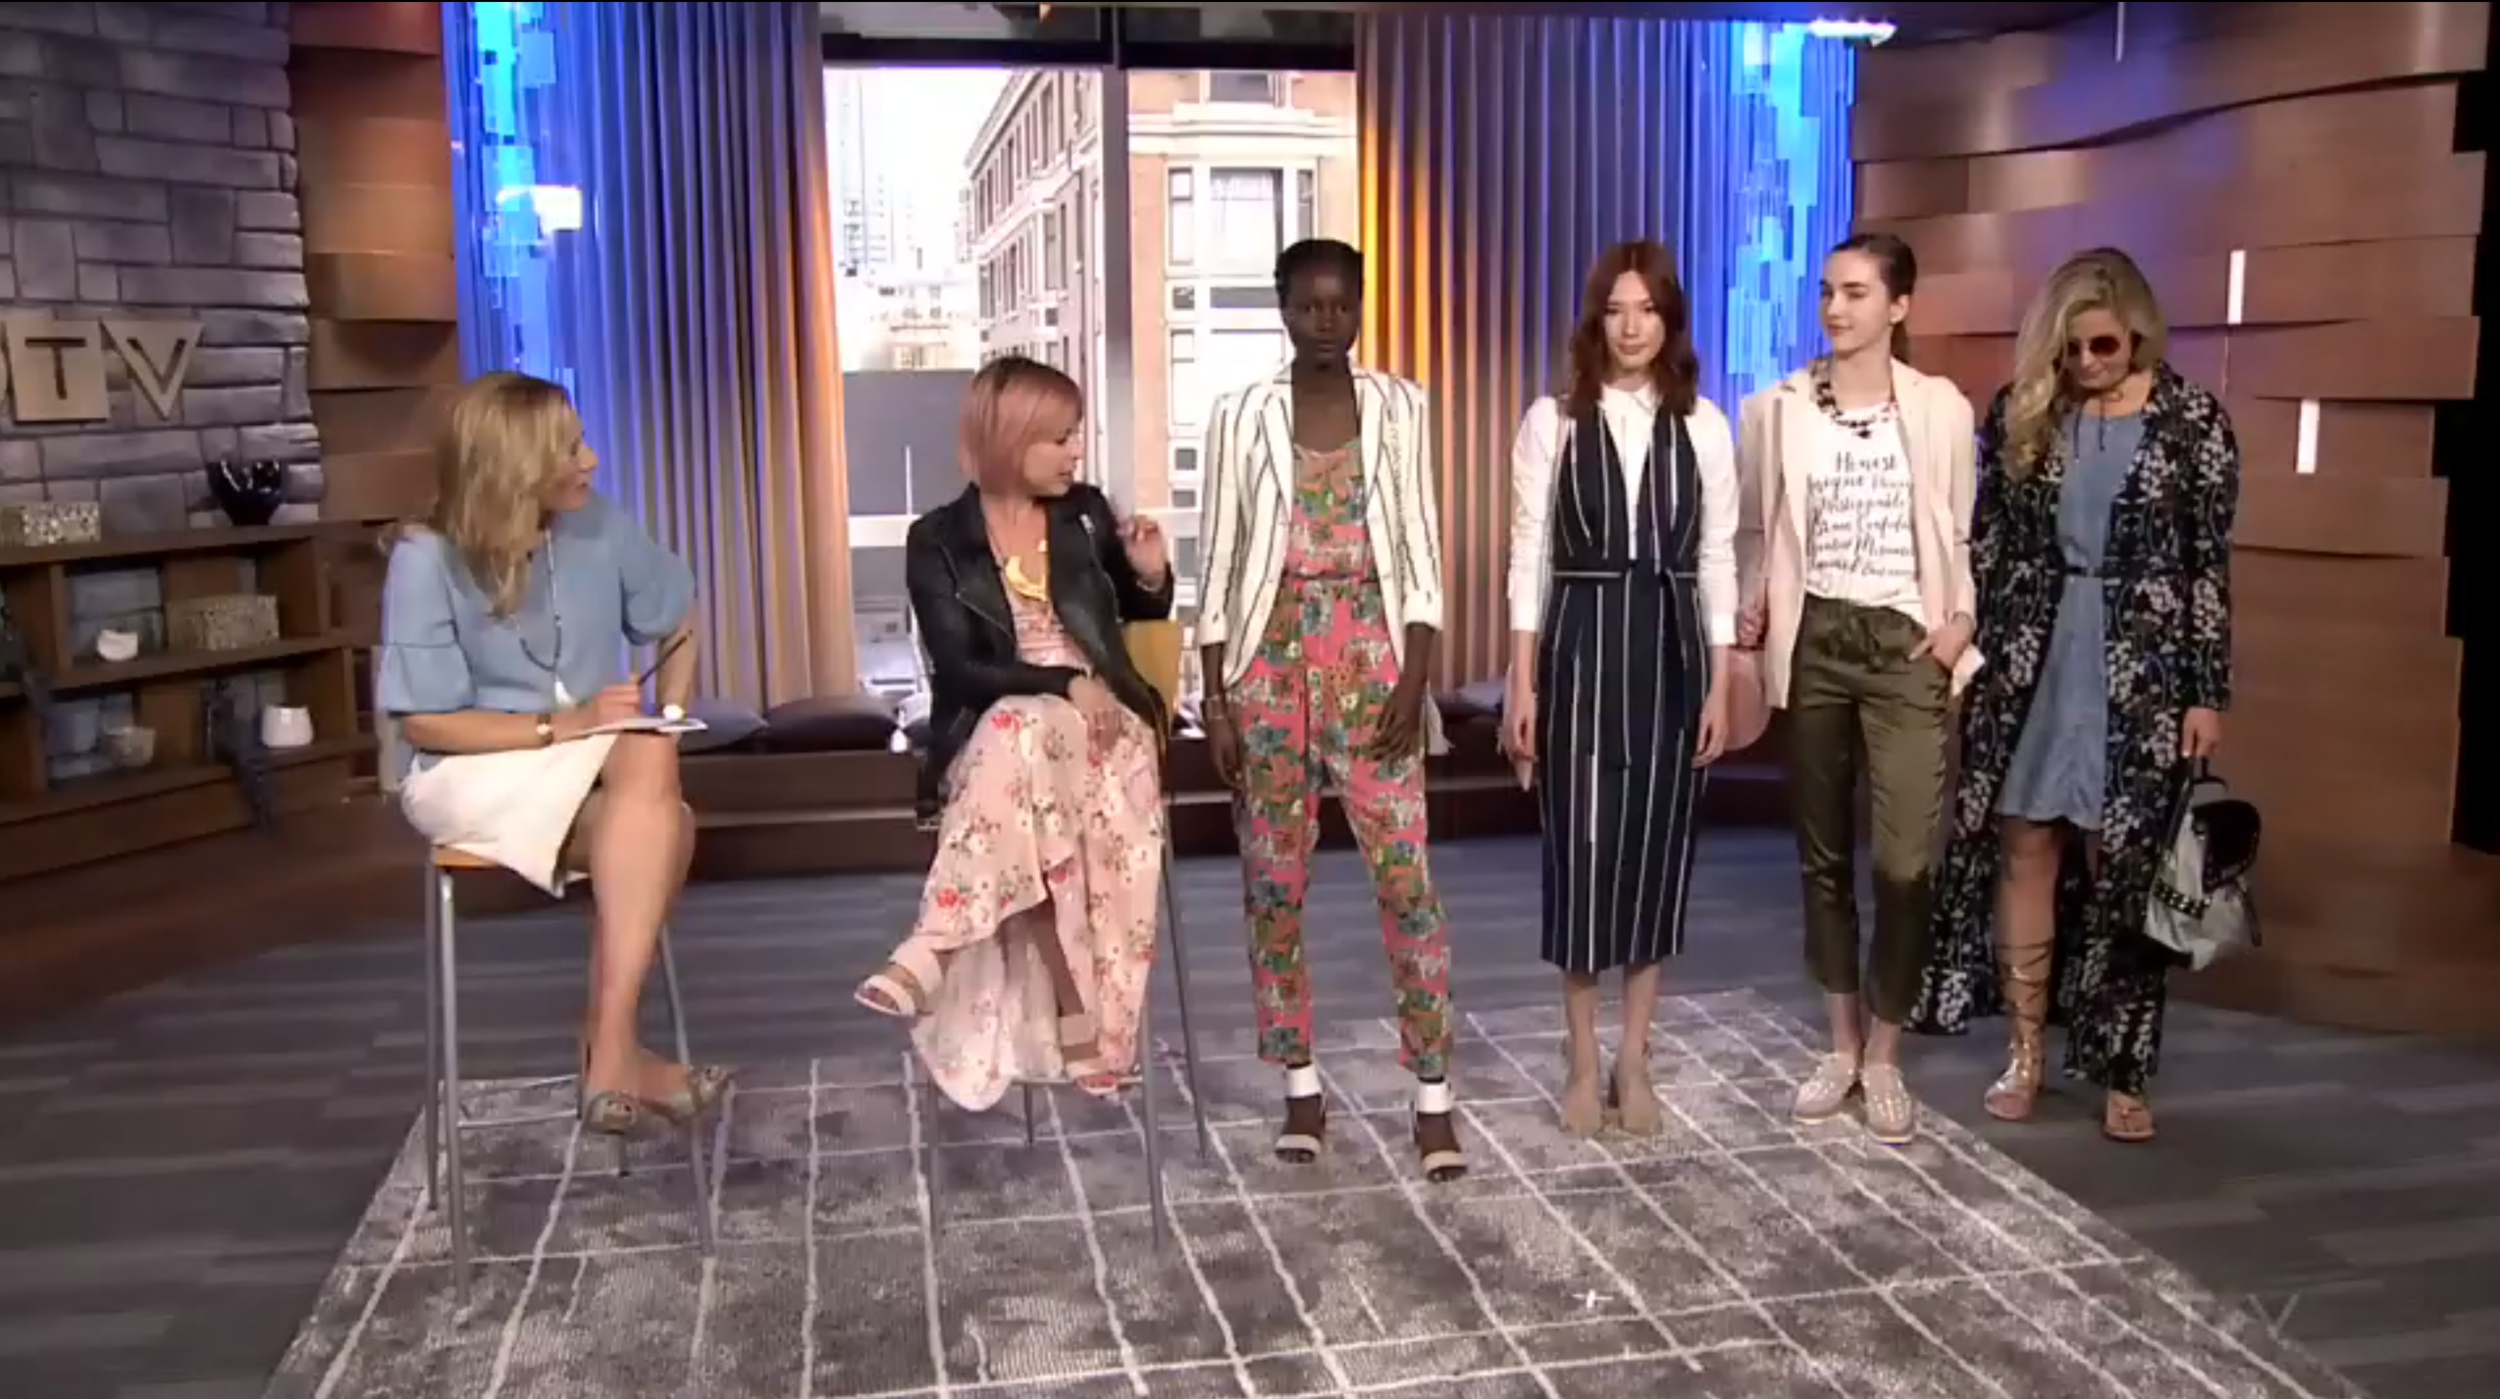 CTV Morning Live: Transitional Spring fashions from Winners and Marshalls